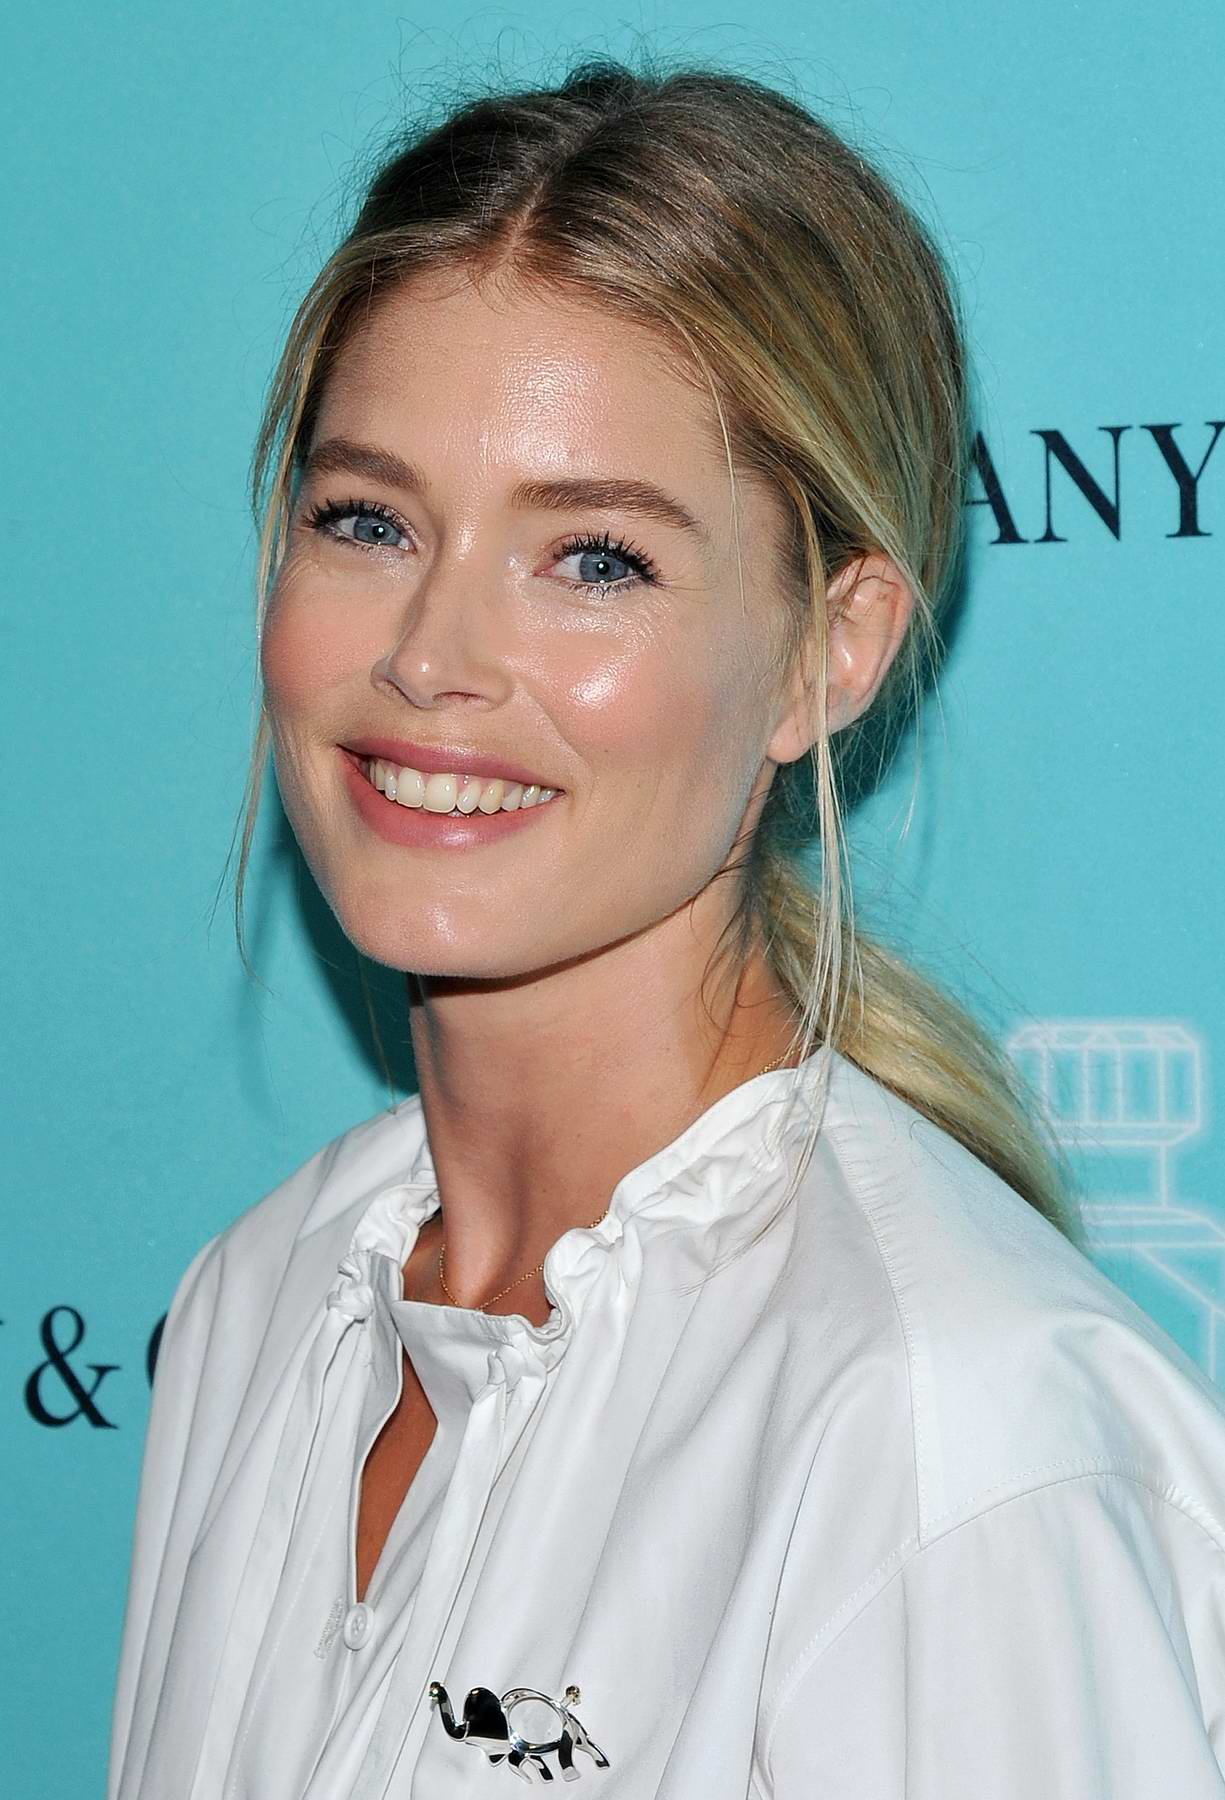 Doutzen Kroes at Tiffany and Co Fragrance launch in New York